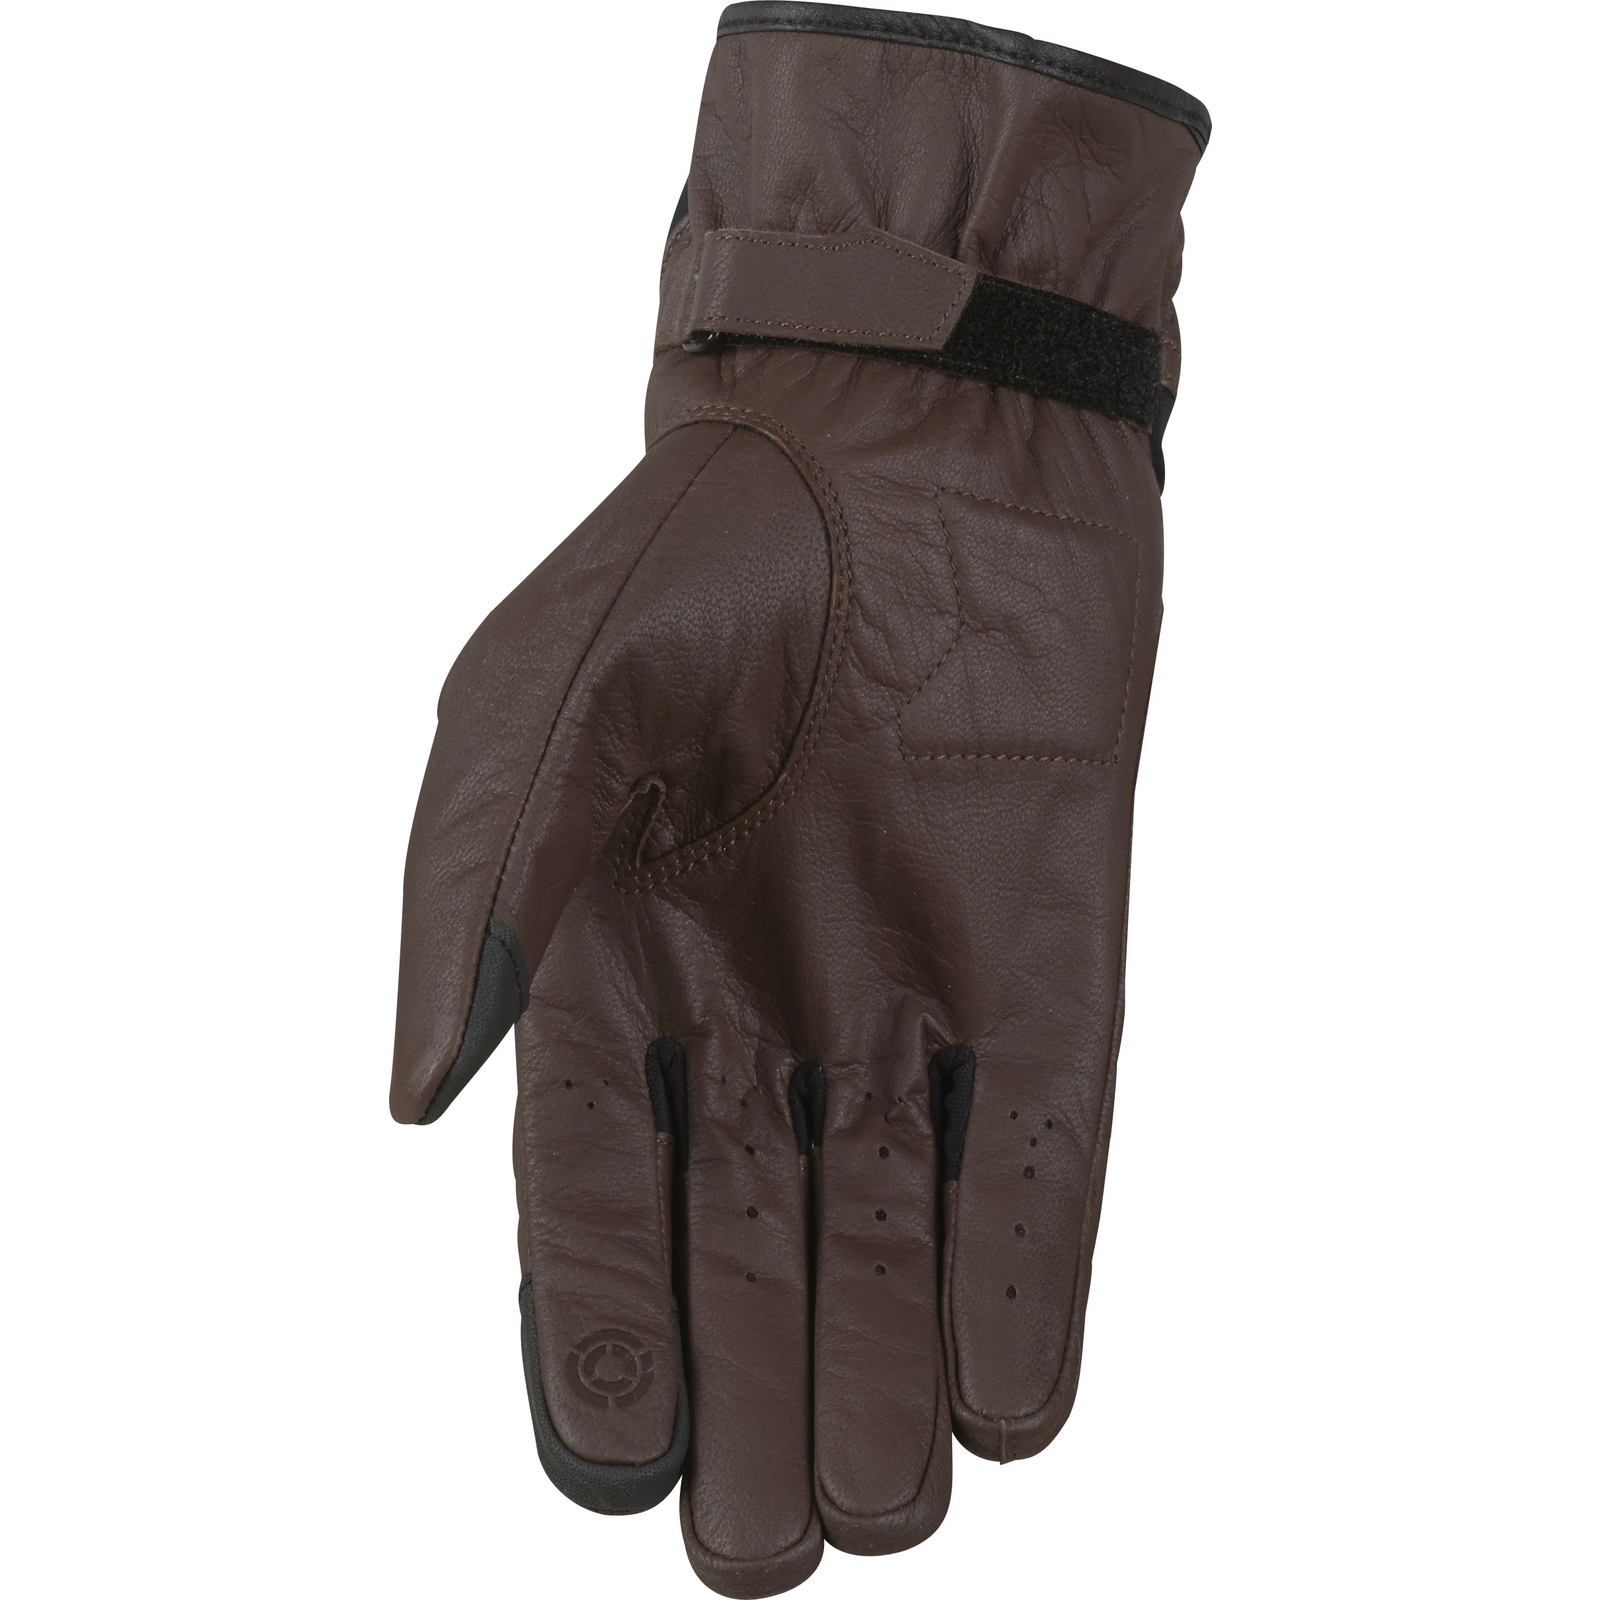 Motorcycle gloves ce approved - Furygan Subway Summer Motorcycle Gloves Ce Approved Lycra